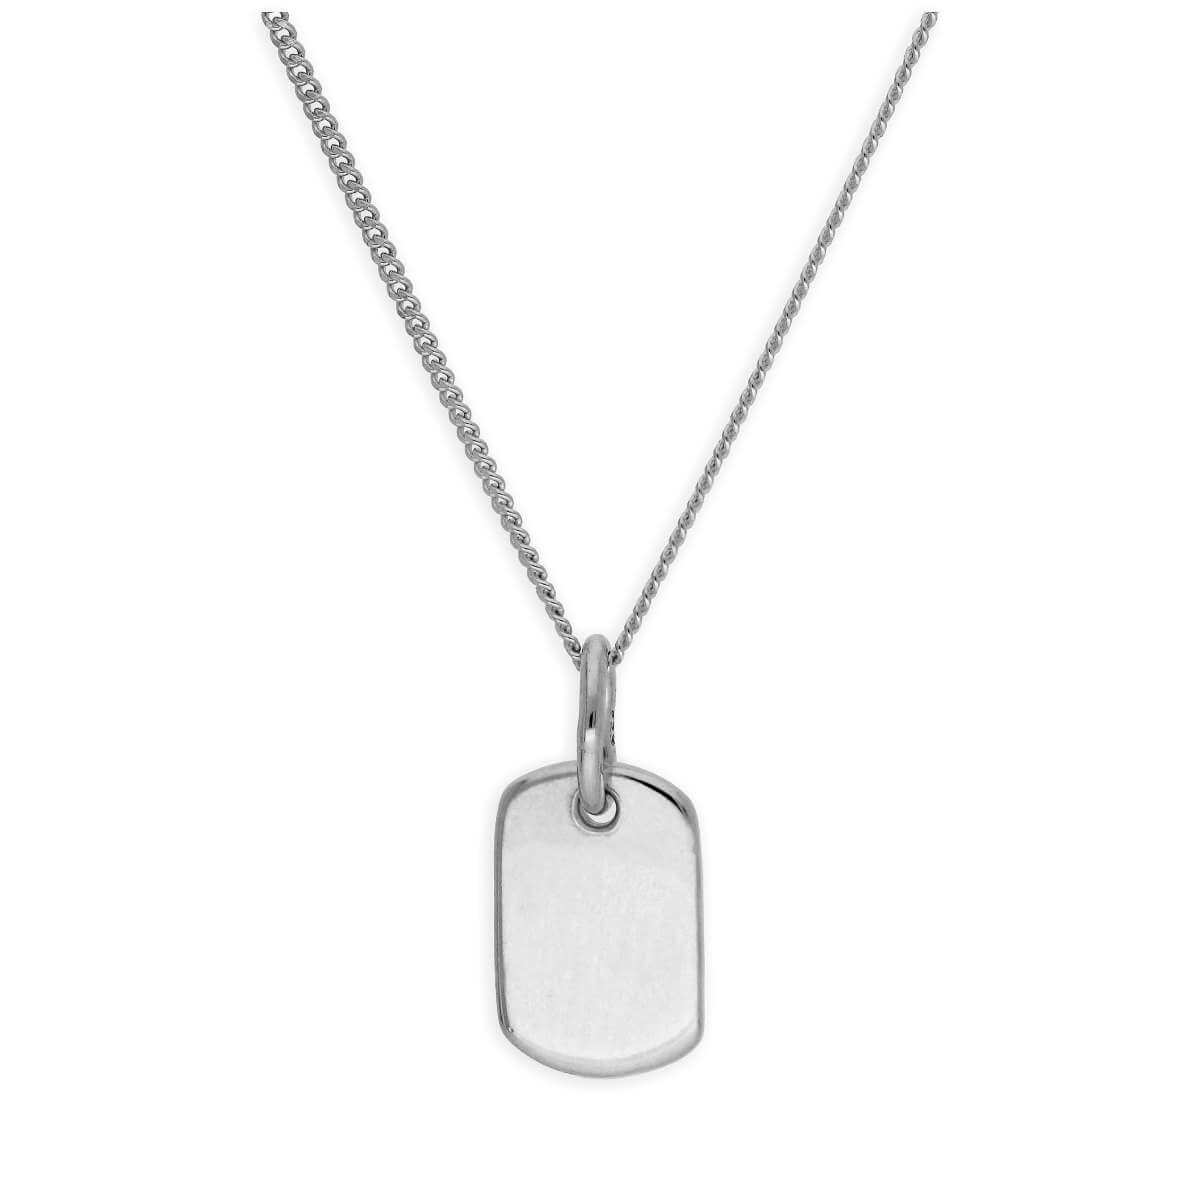 Sterling Silver Mini Engravable Tag Necklace 14-32 Inches